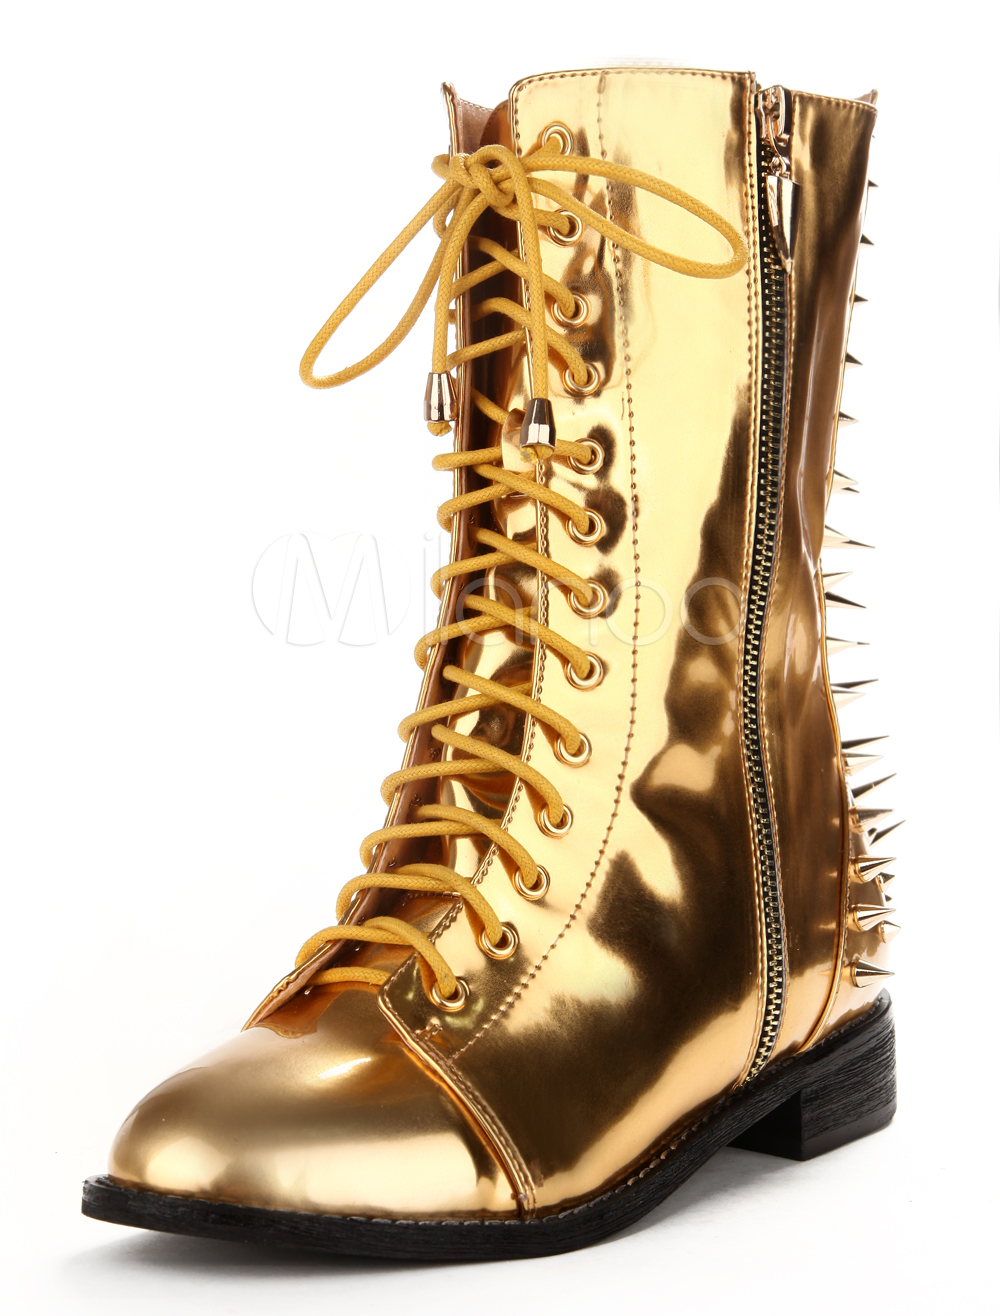 Gold Spikes Metallic PU Leather Lace Up Boots For Women - m ...